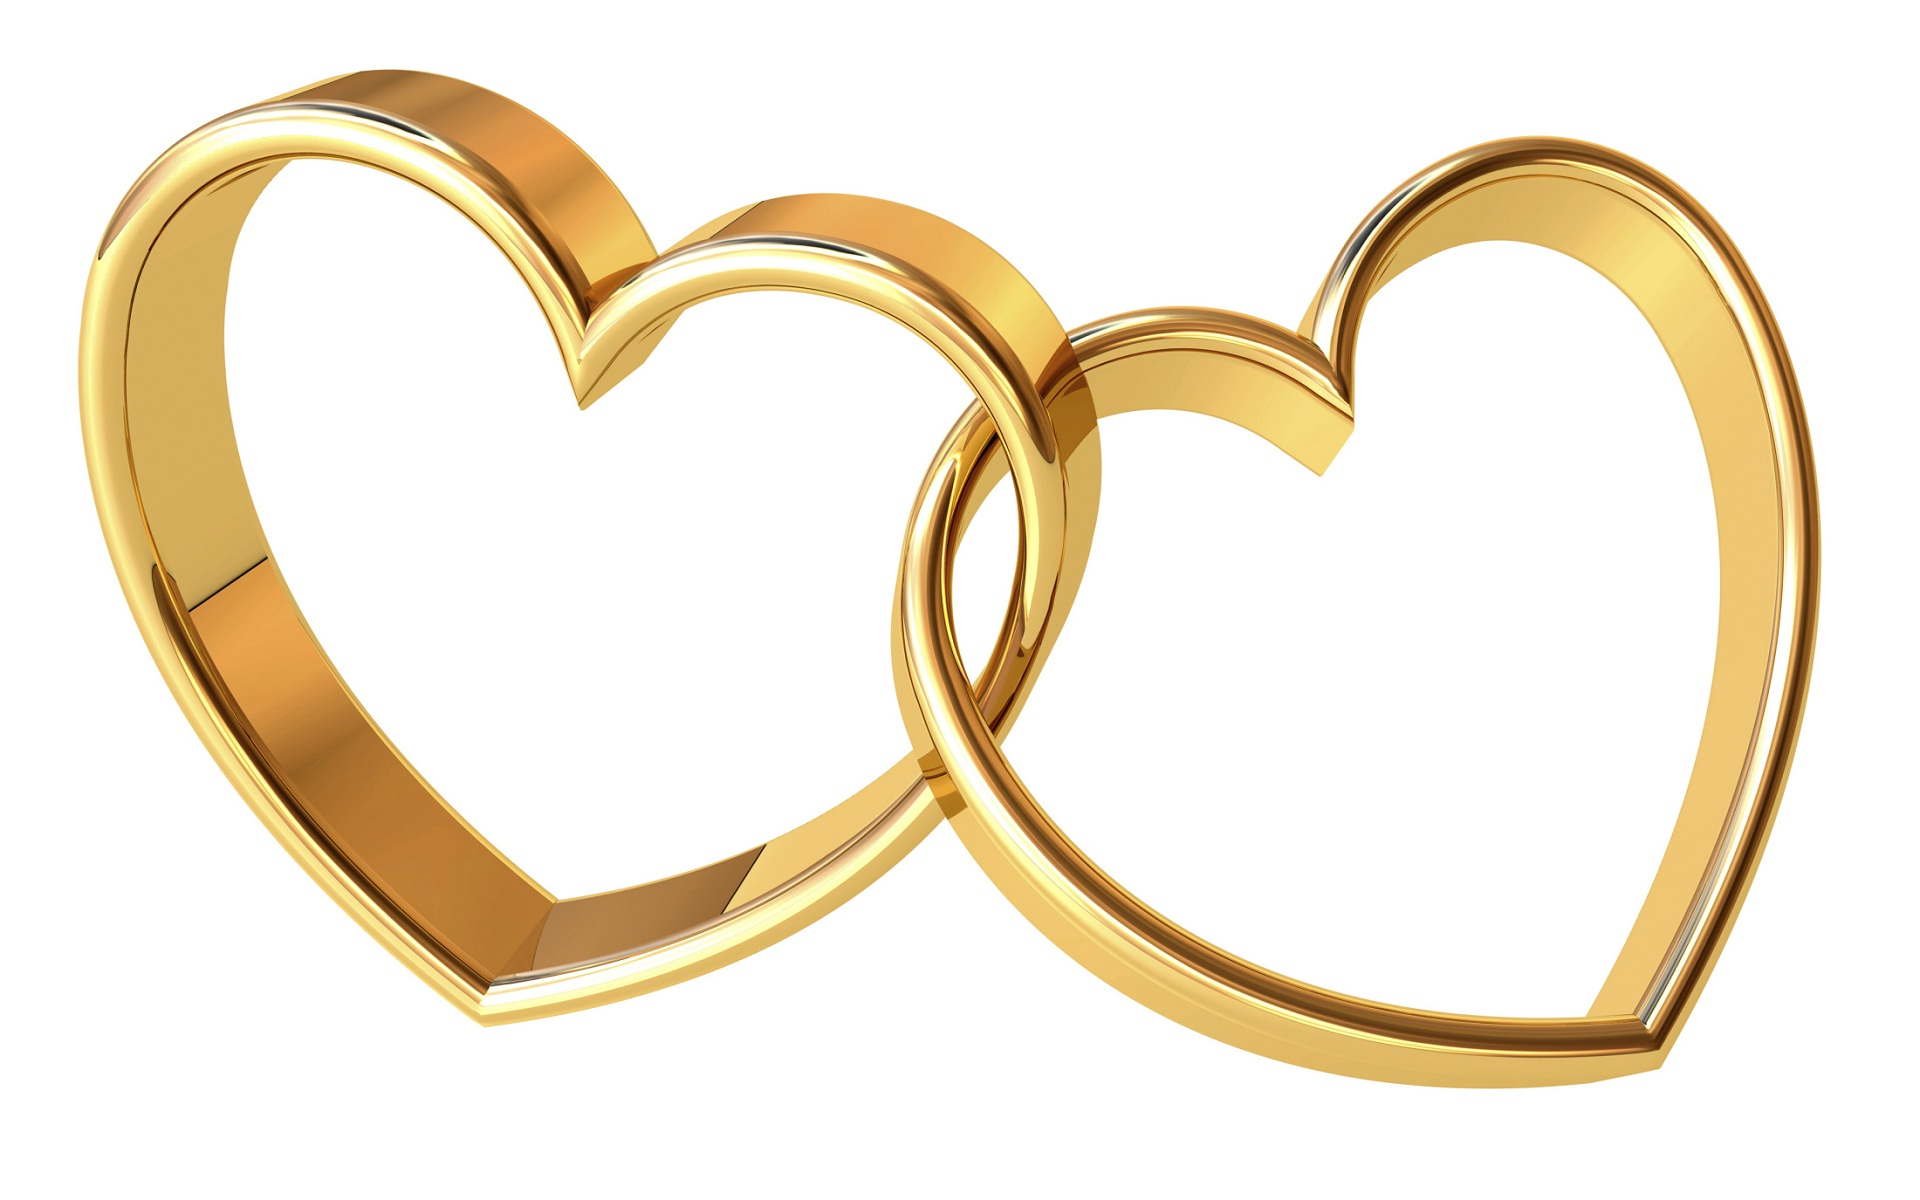 Anniversary hearts clipart png royalty free Gold rings heart shape happy anniversary | HD Wallpapers Rocks ... png royalty free